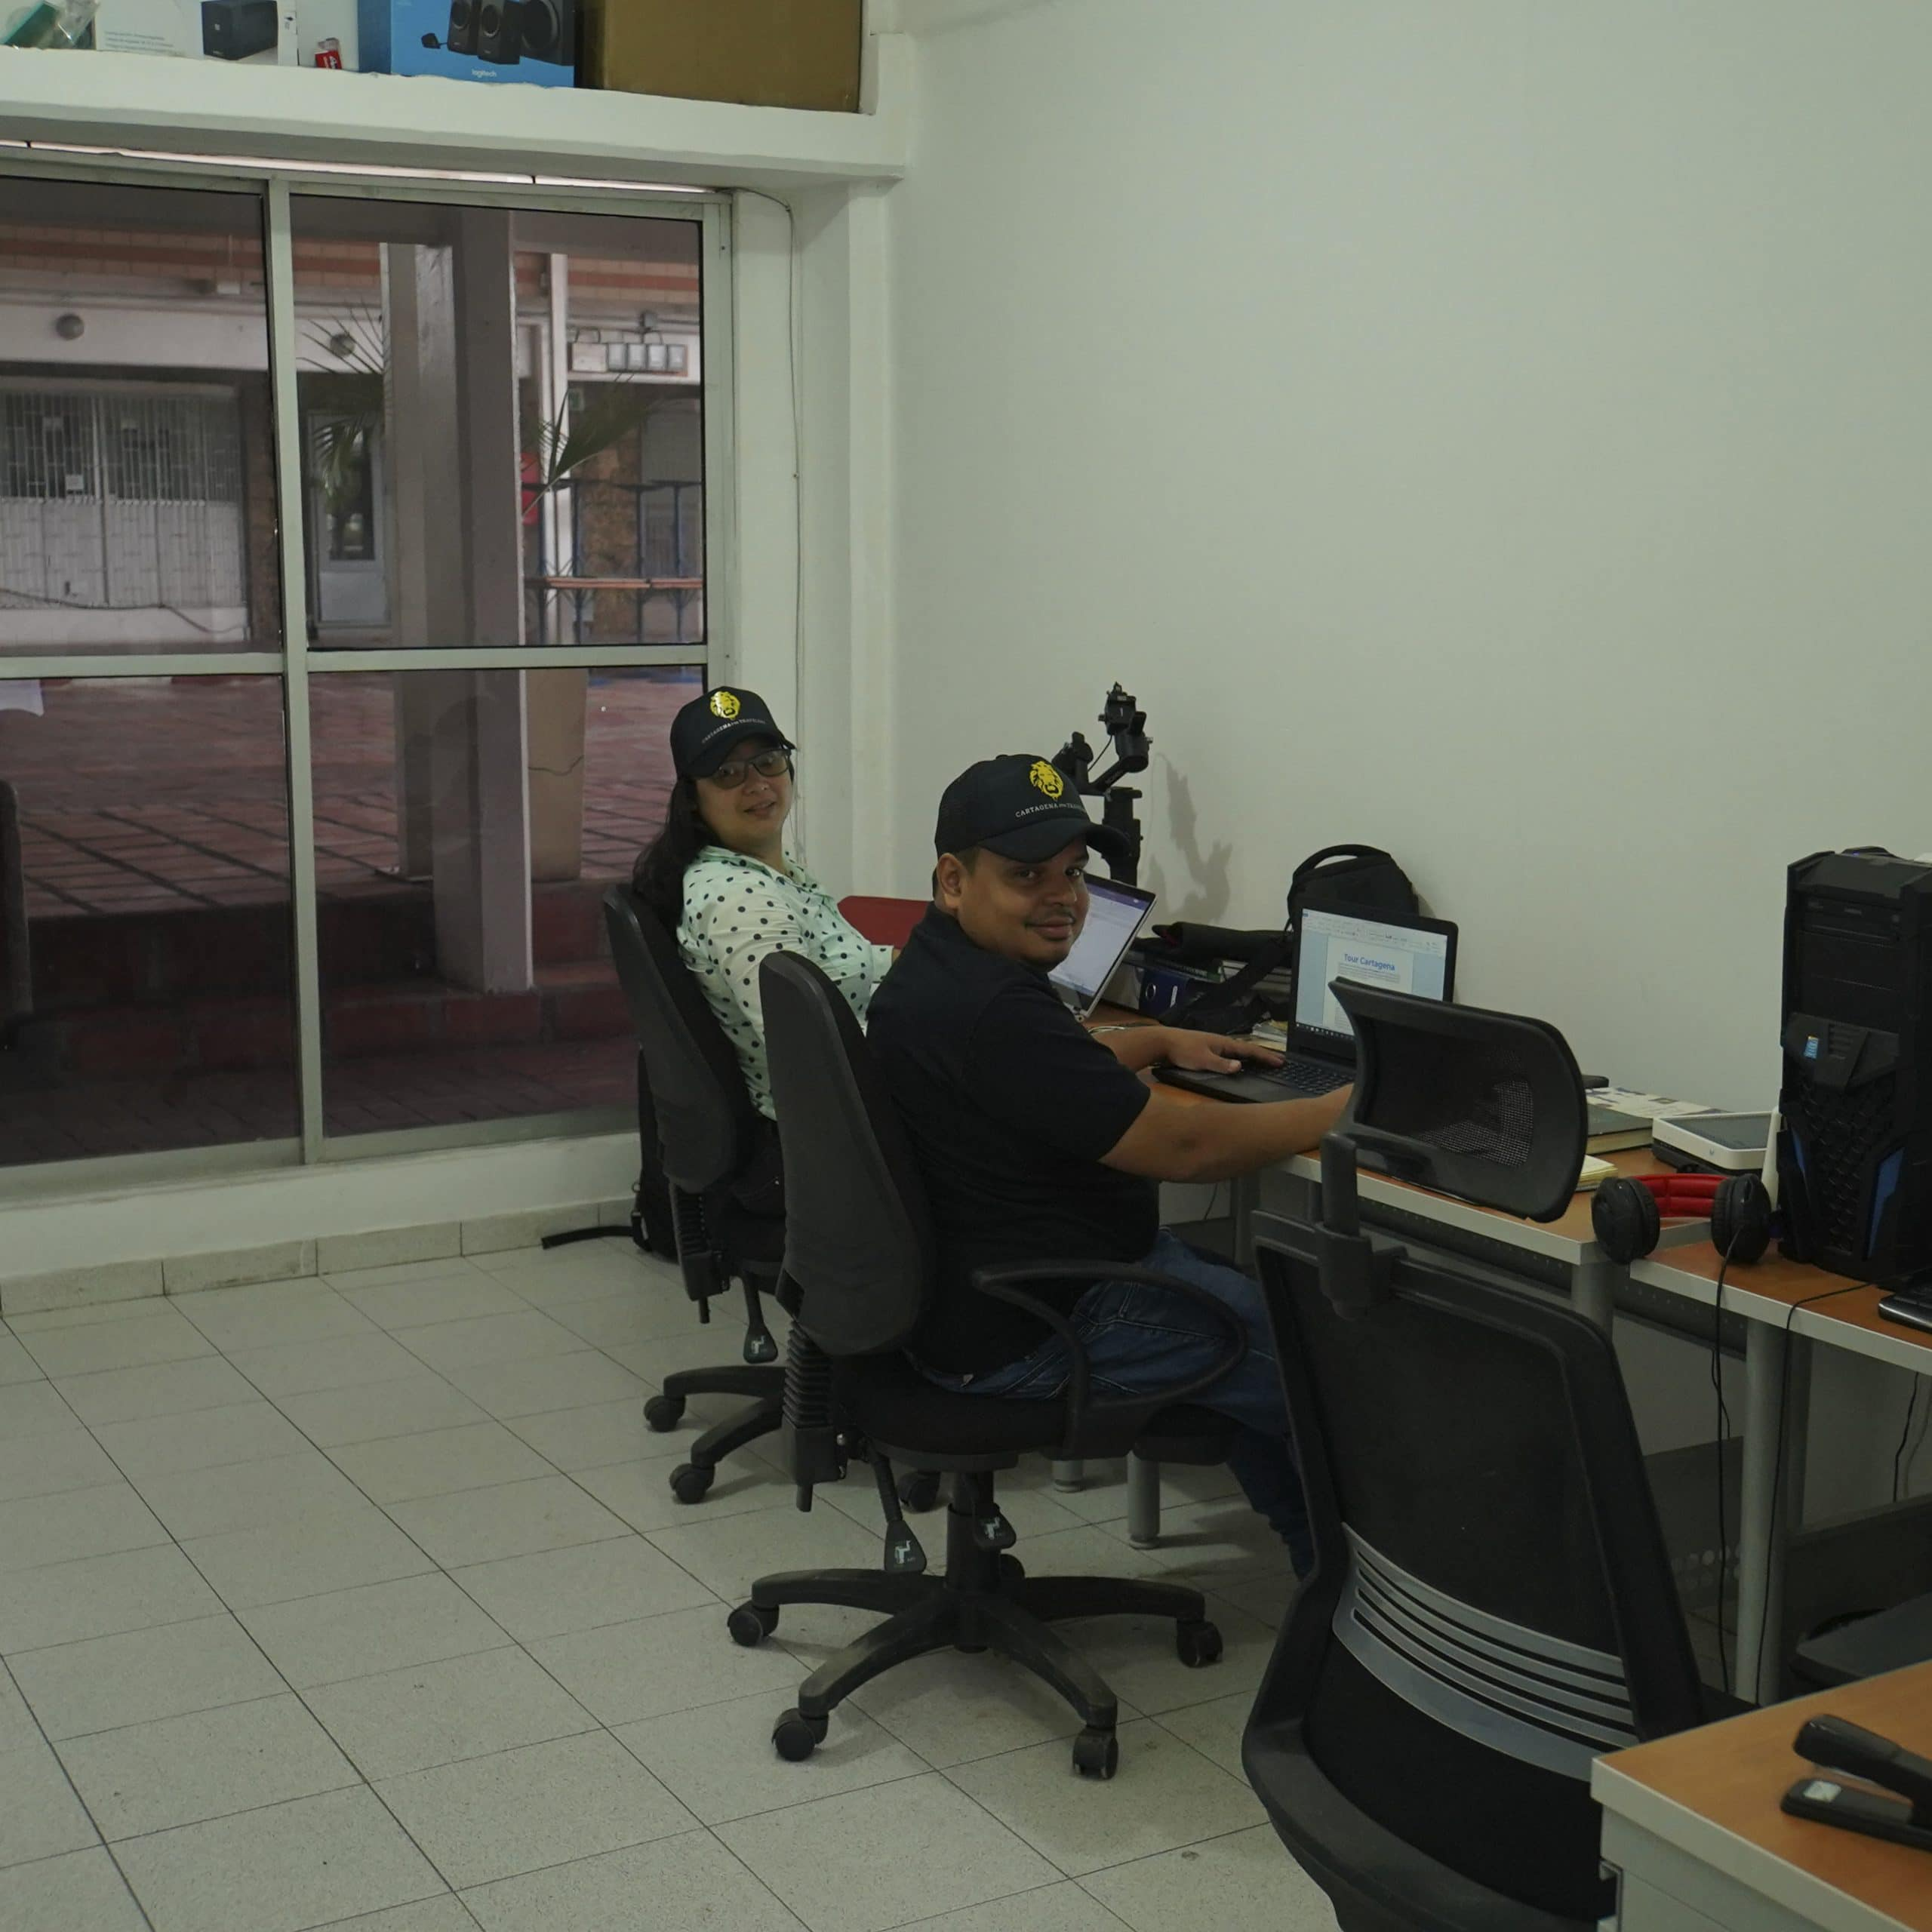 Cartagena for Travelers Office 2